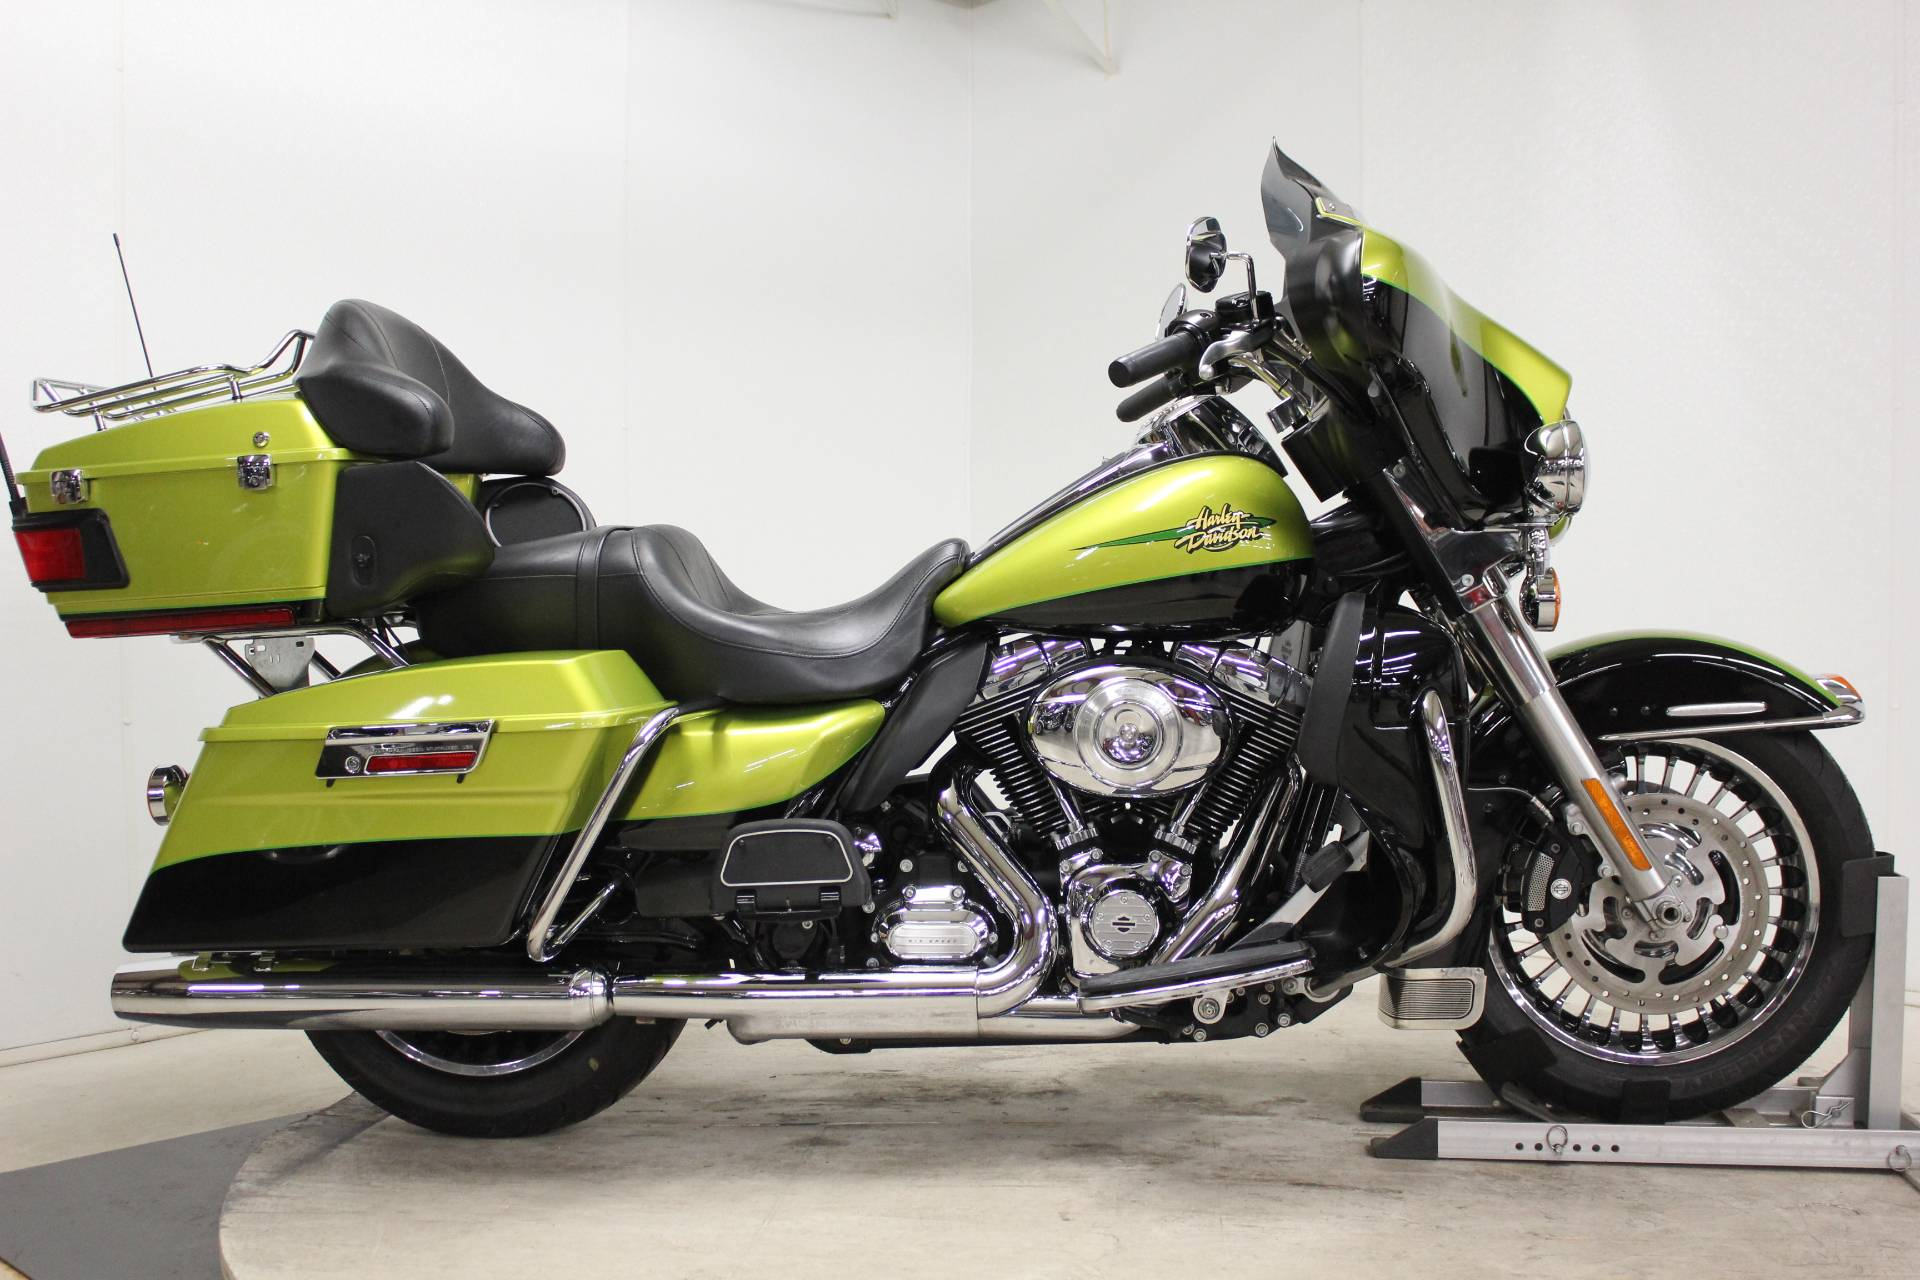 2011 Harley-Davidson Electra Glide® Ultra Limited in Pittsfield, Massachusetts - Photo 1